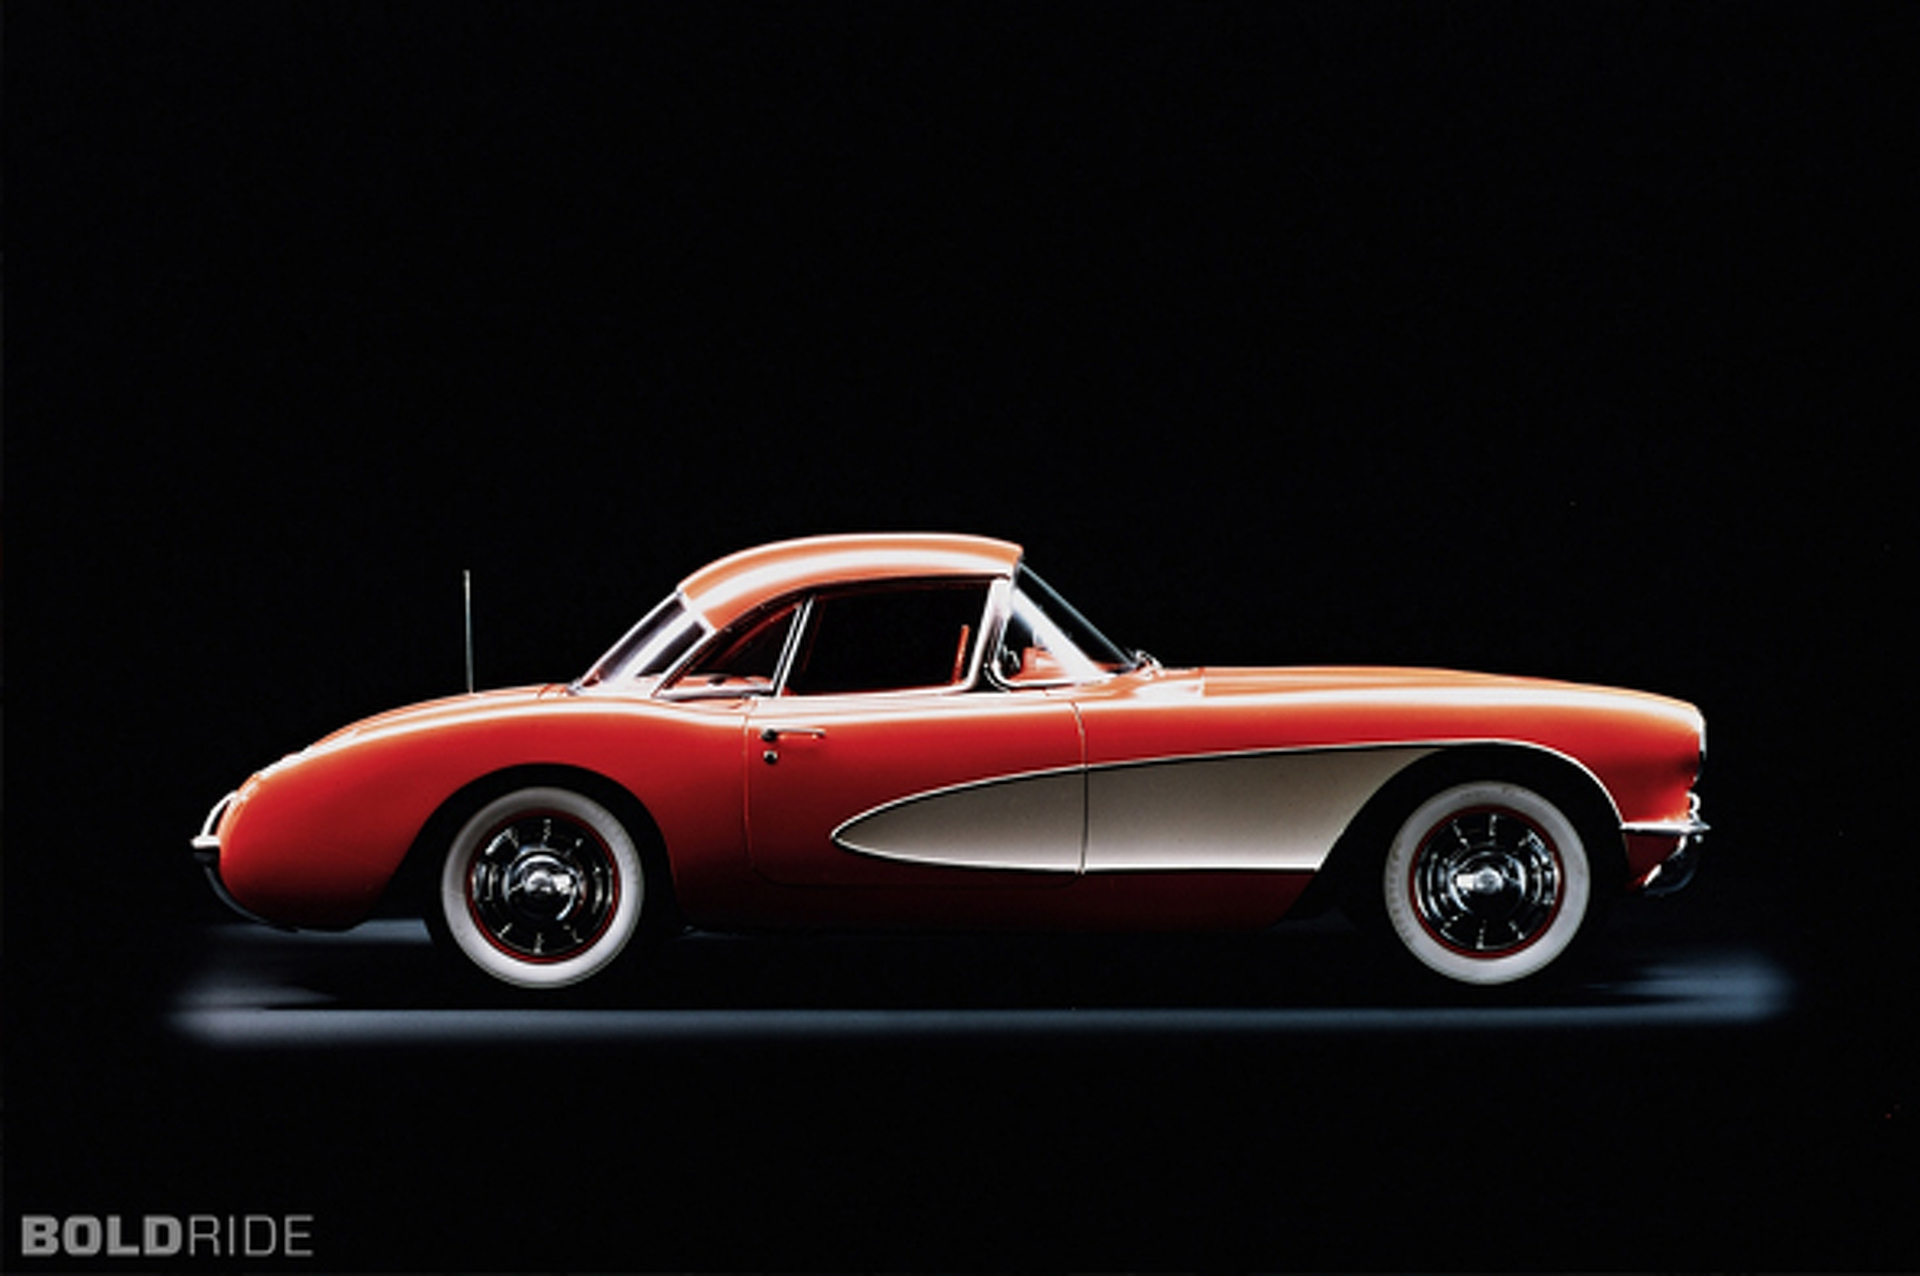 The List: Timeless Automotive Design